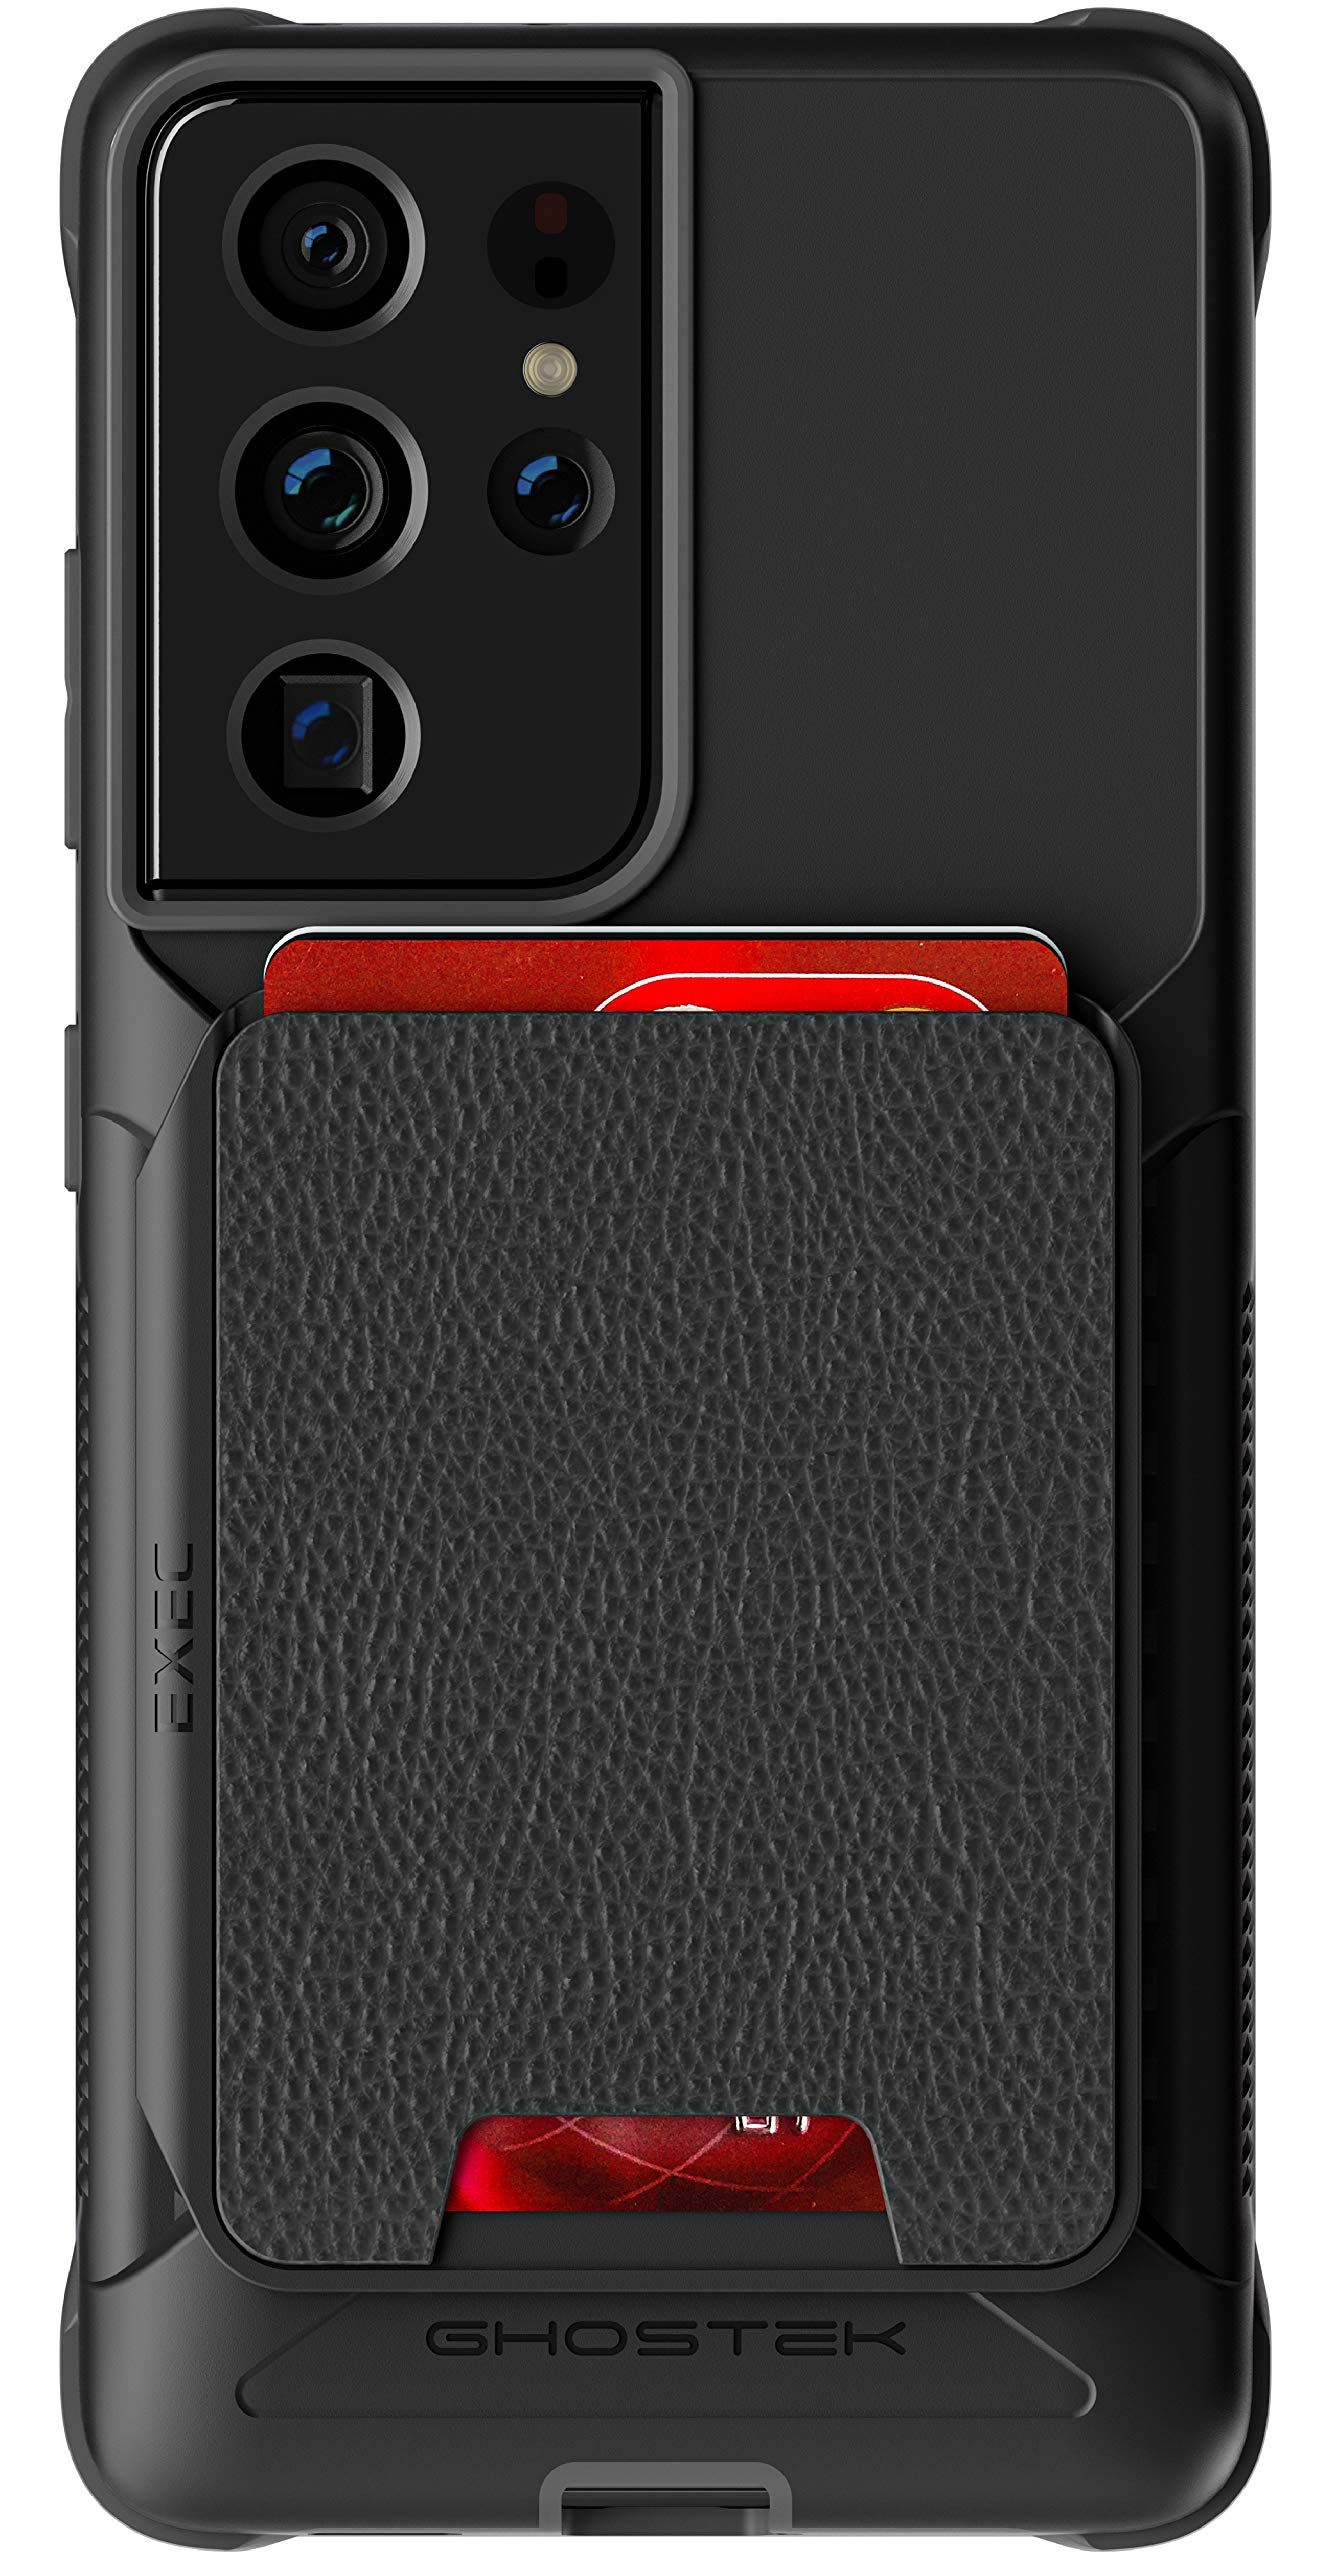 Ghostek Exec Galaxy S21 5G Wallet Case with Credit Card Holder and Magnetic for Cars Magnet Mounts Detachable Leather Pocket Protective Phone Cover for 2021 Galaxy S21 5G (6.2 Inch) (Phantom Black)